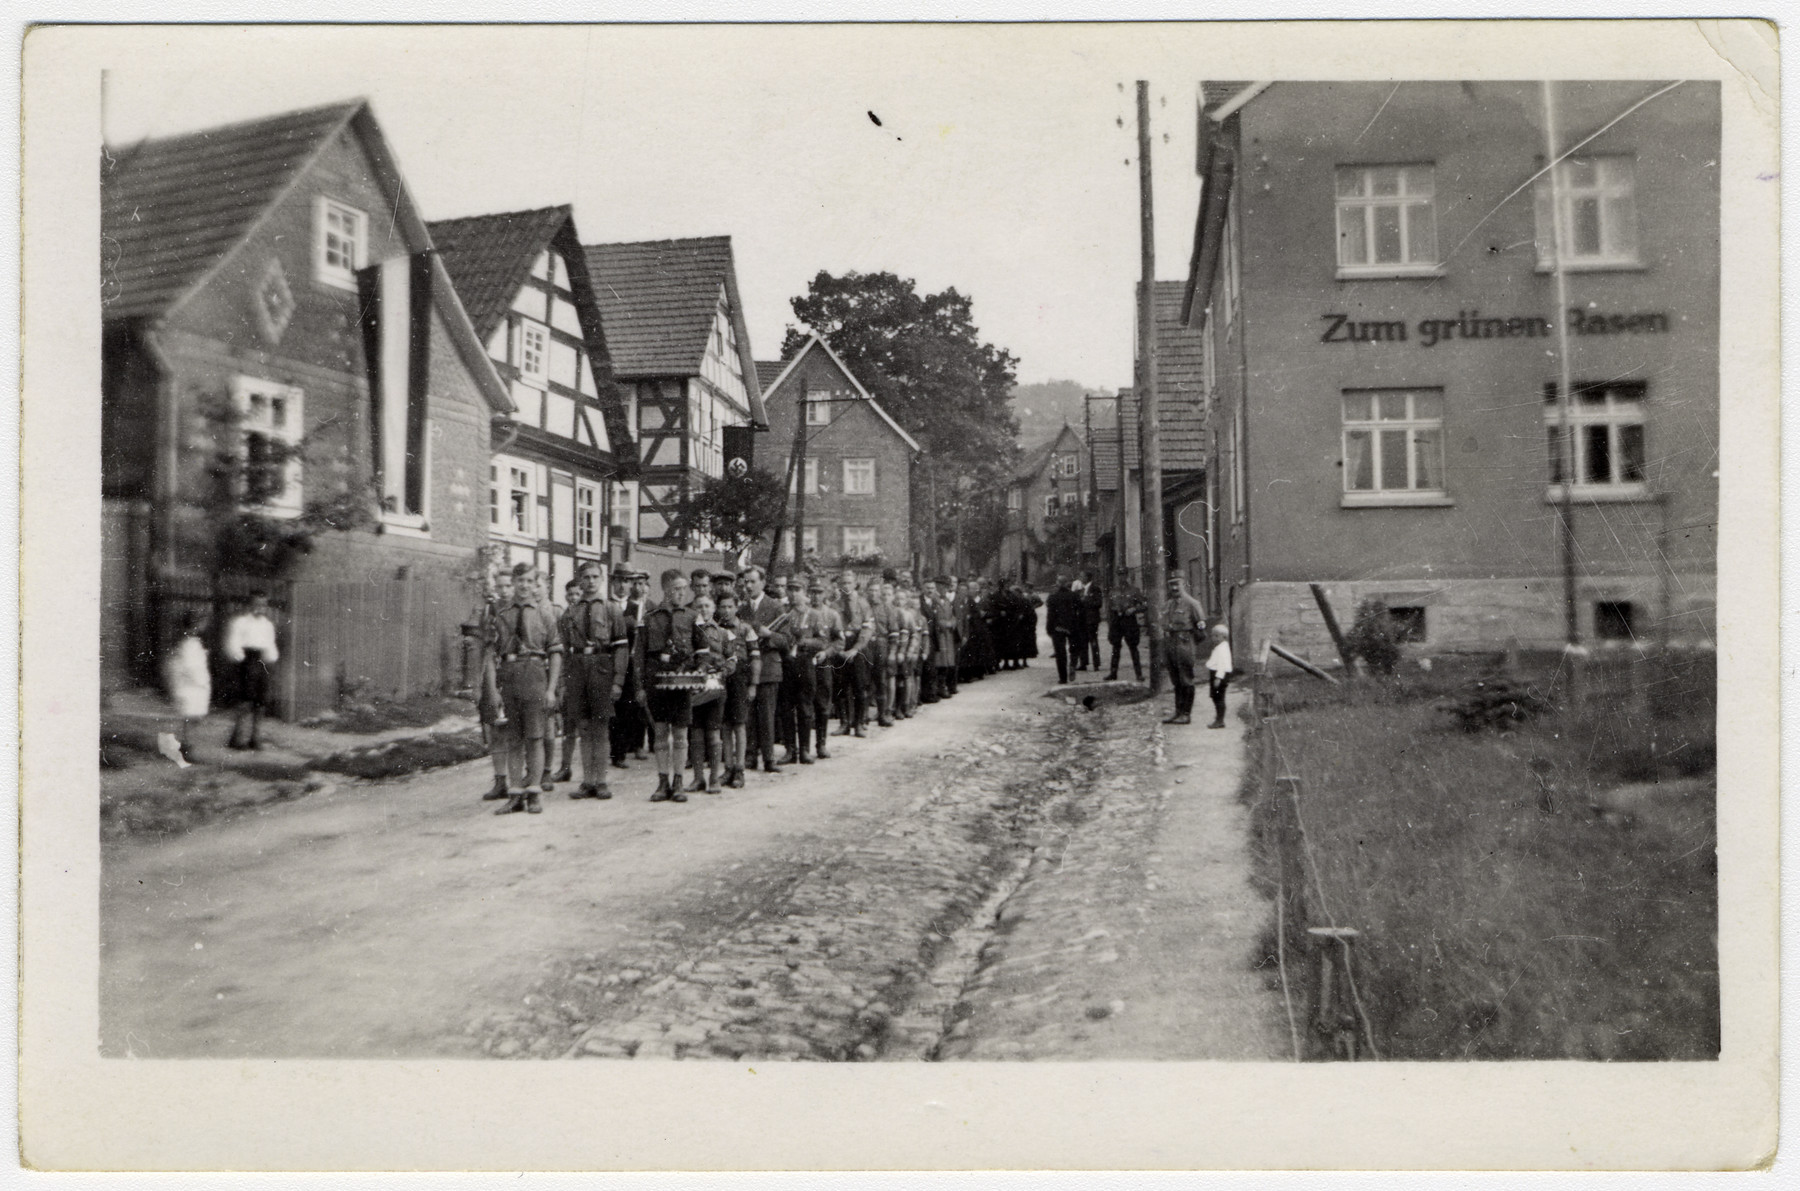 Members of the Hitler Youth stand ready to parade down a street.